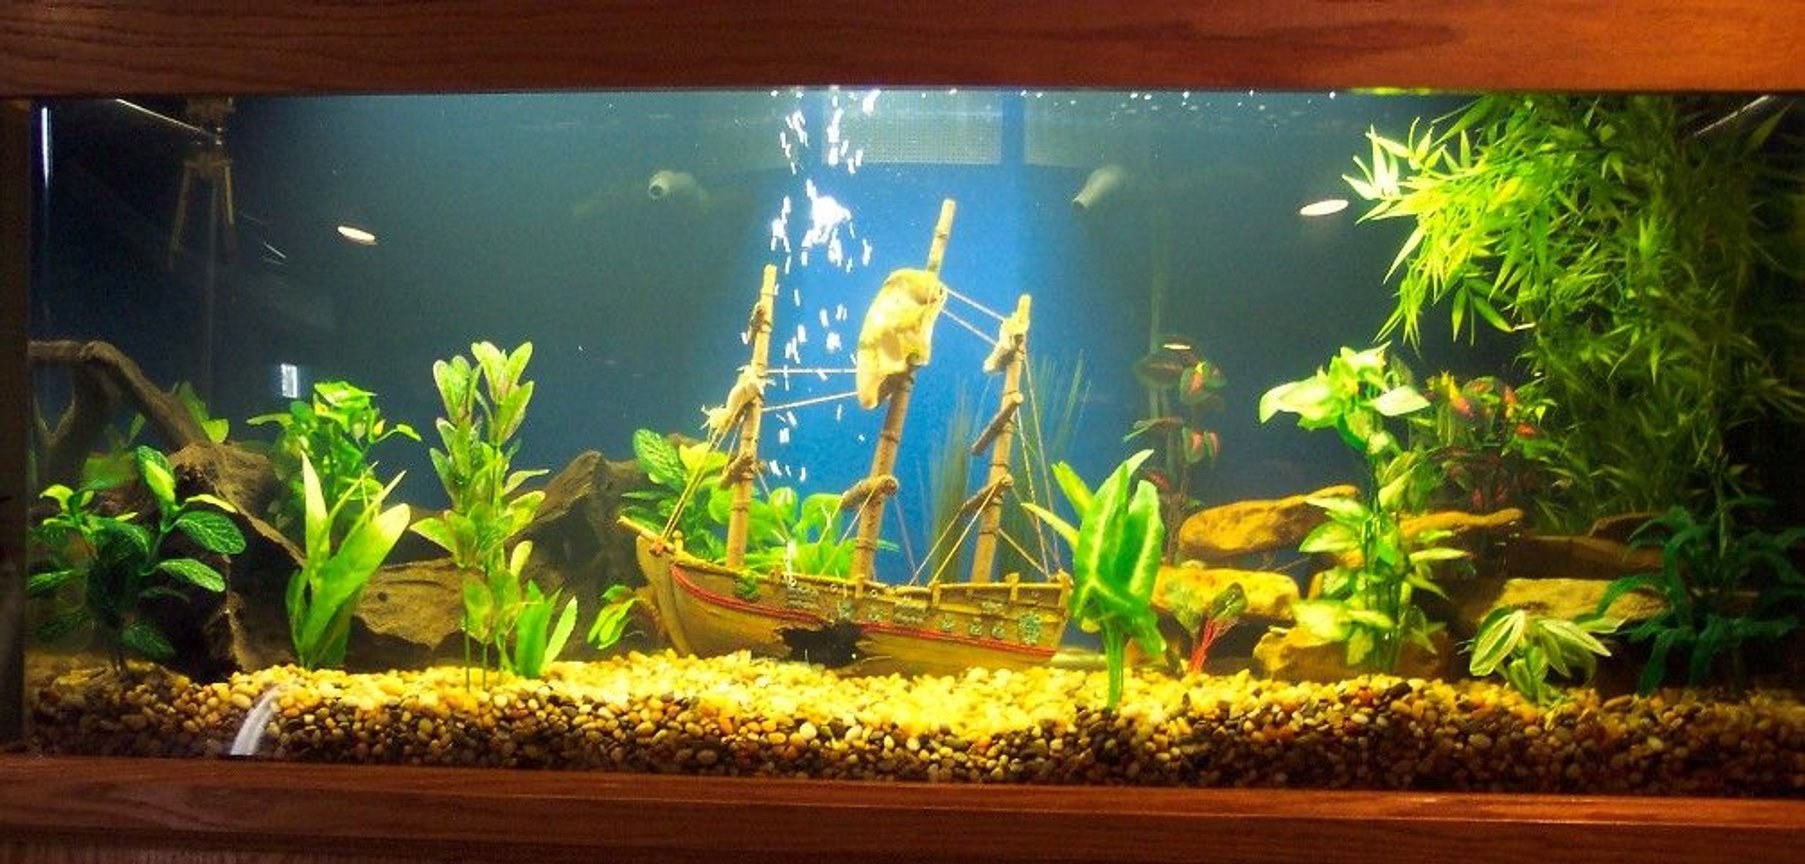 75 gallons freshwater fish tank (mostly fish and non-living decorations) - Our new 75 gal. tank.